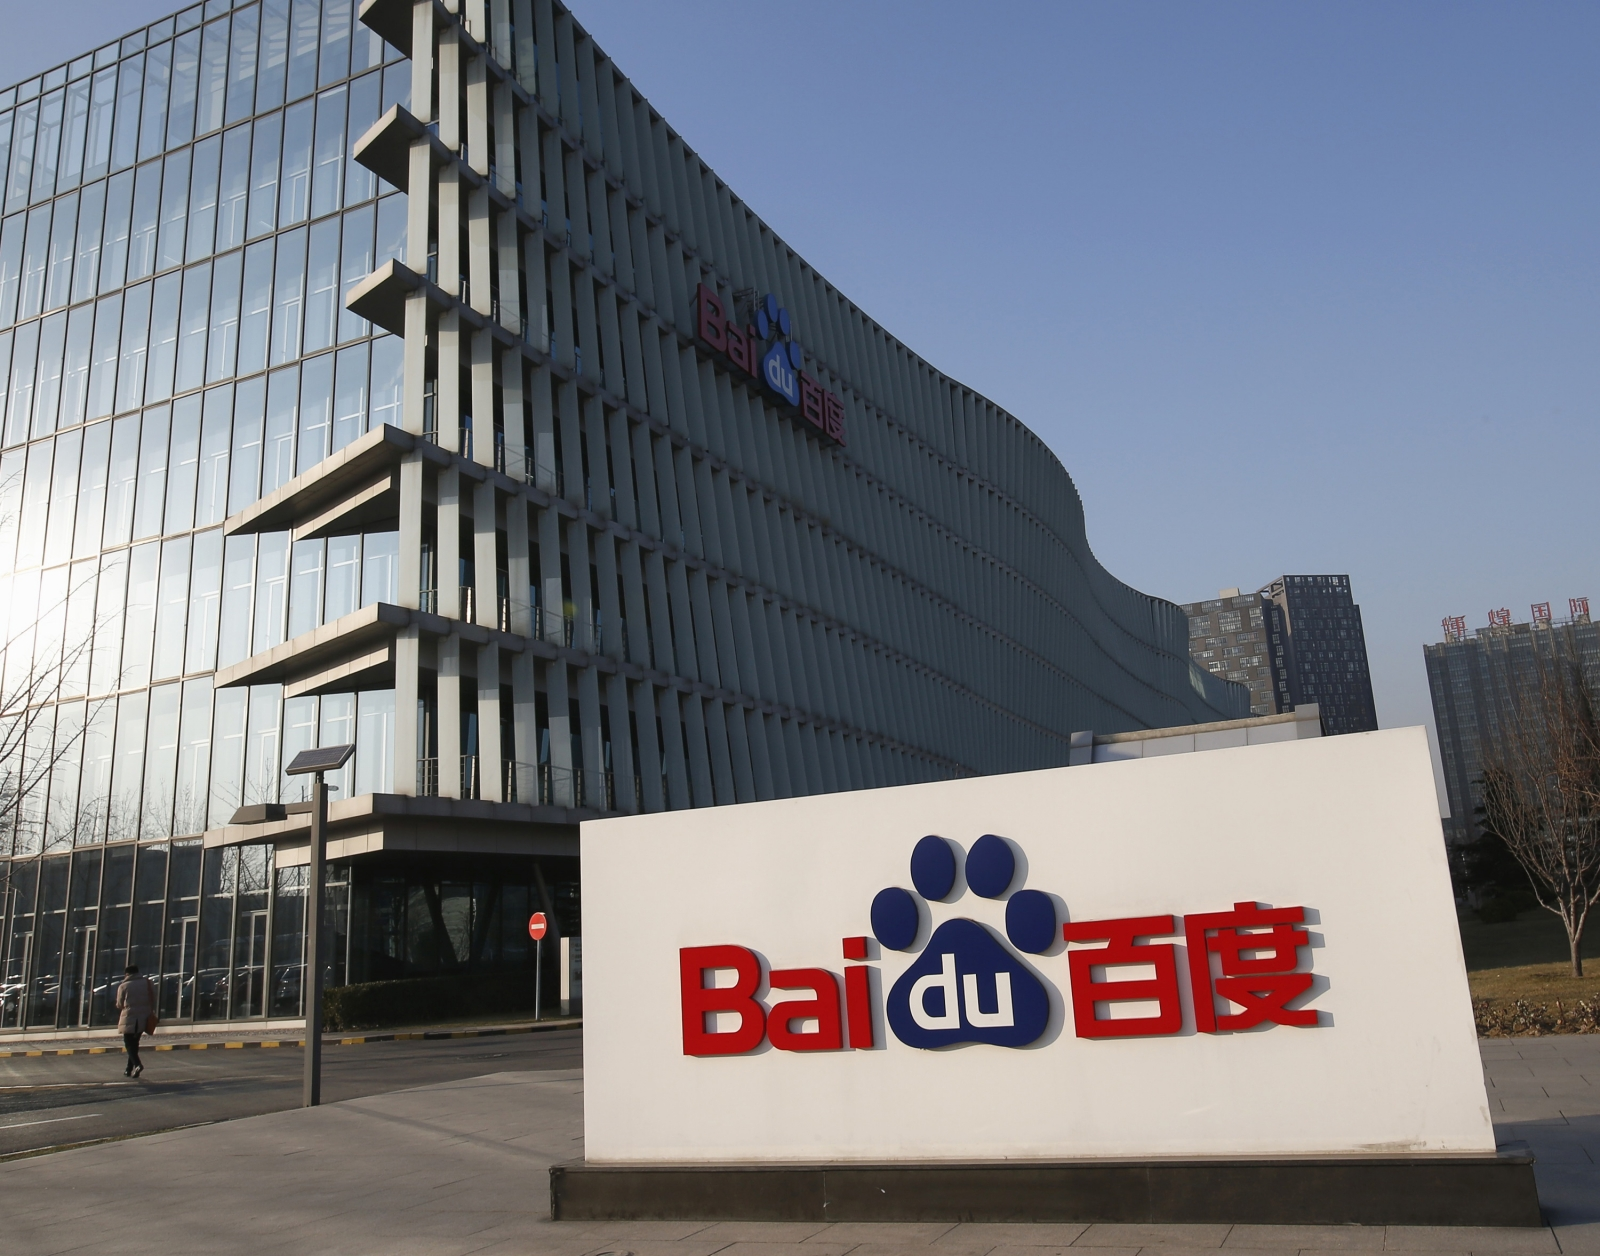 baidu minwa supercomputer artificial intelligence